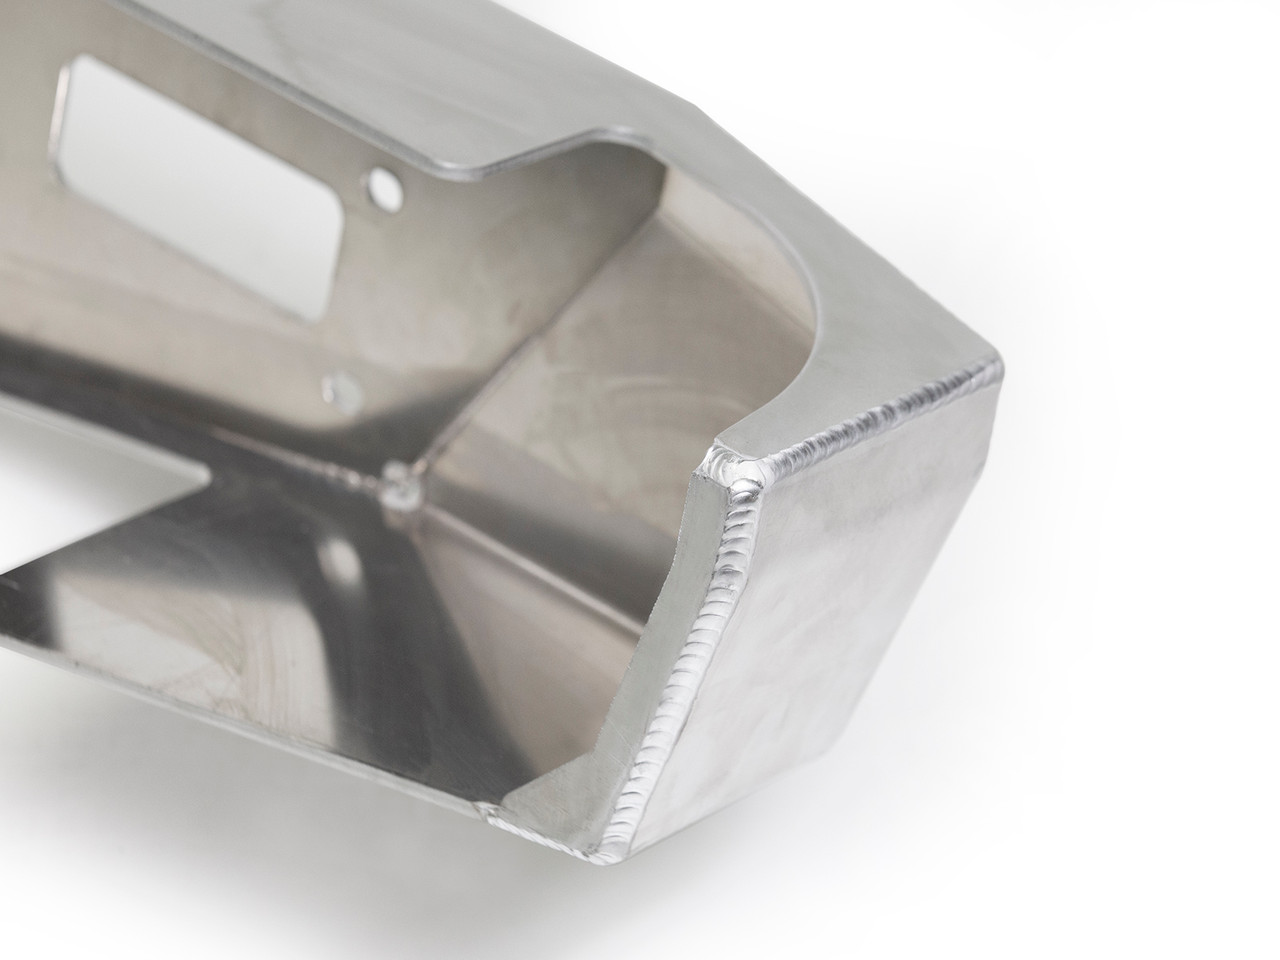 TIG welded end cap provides a seamless fit to the body.